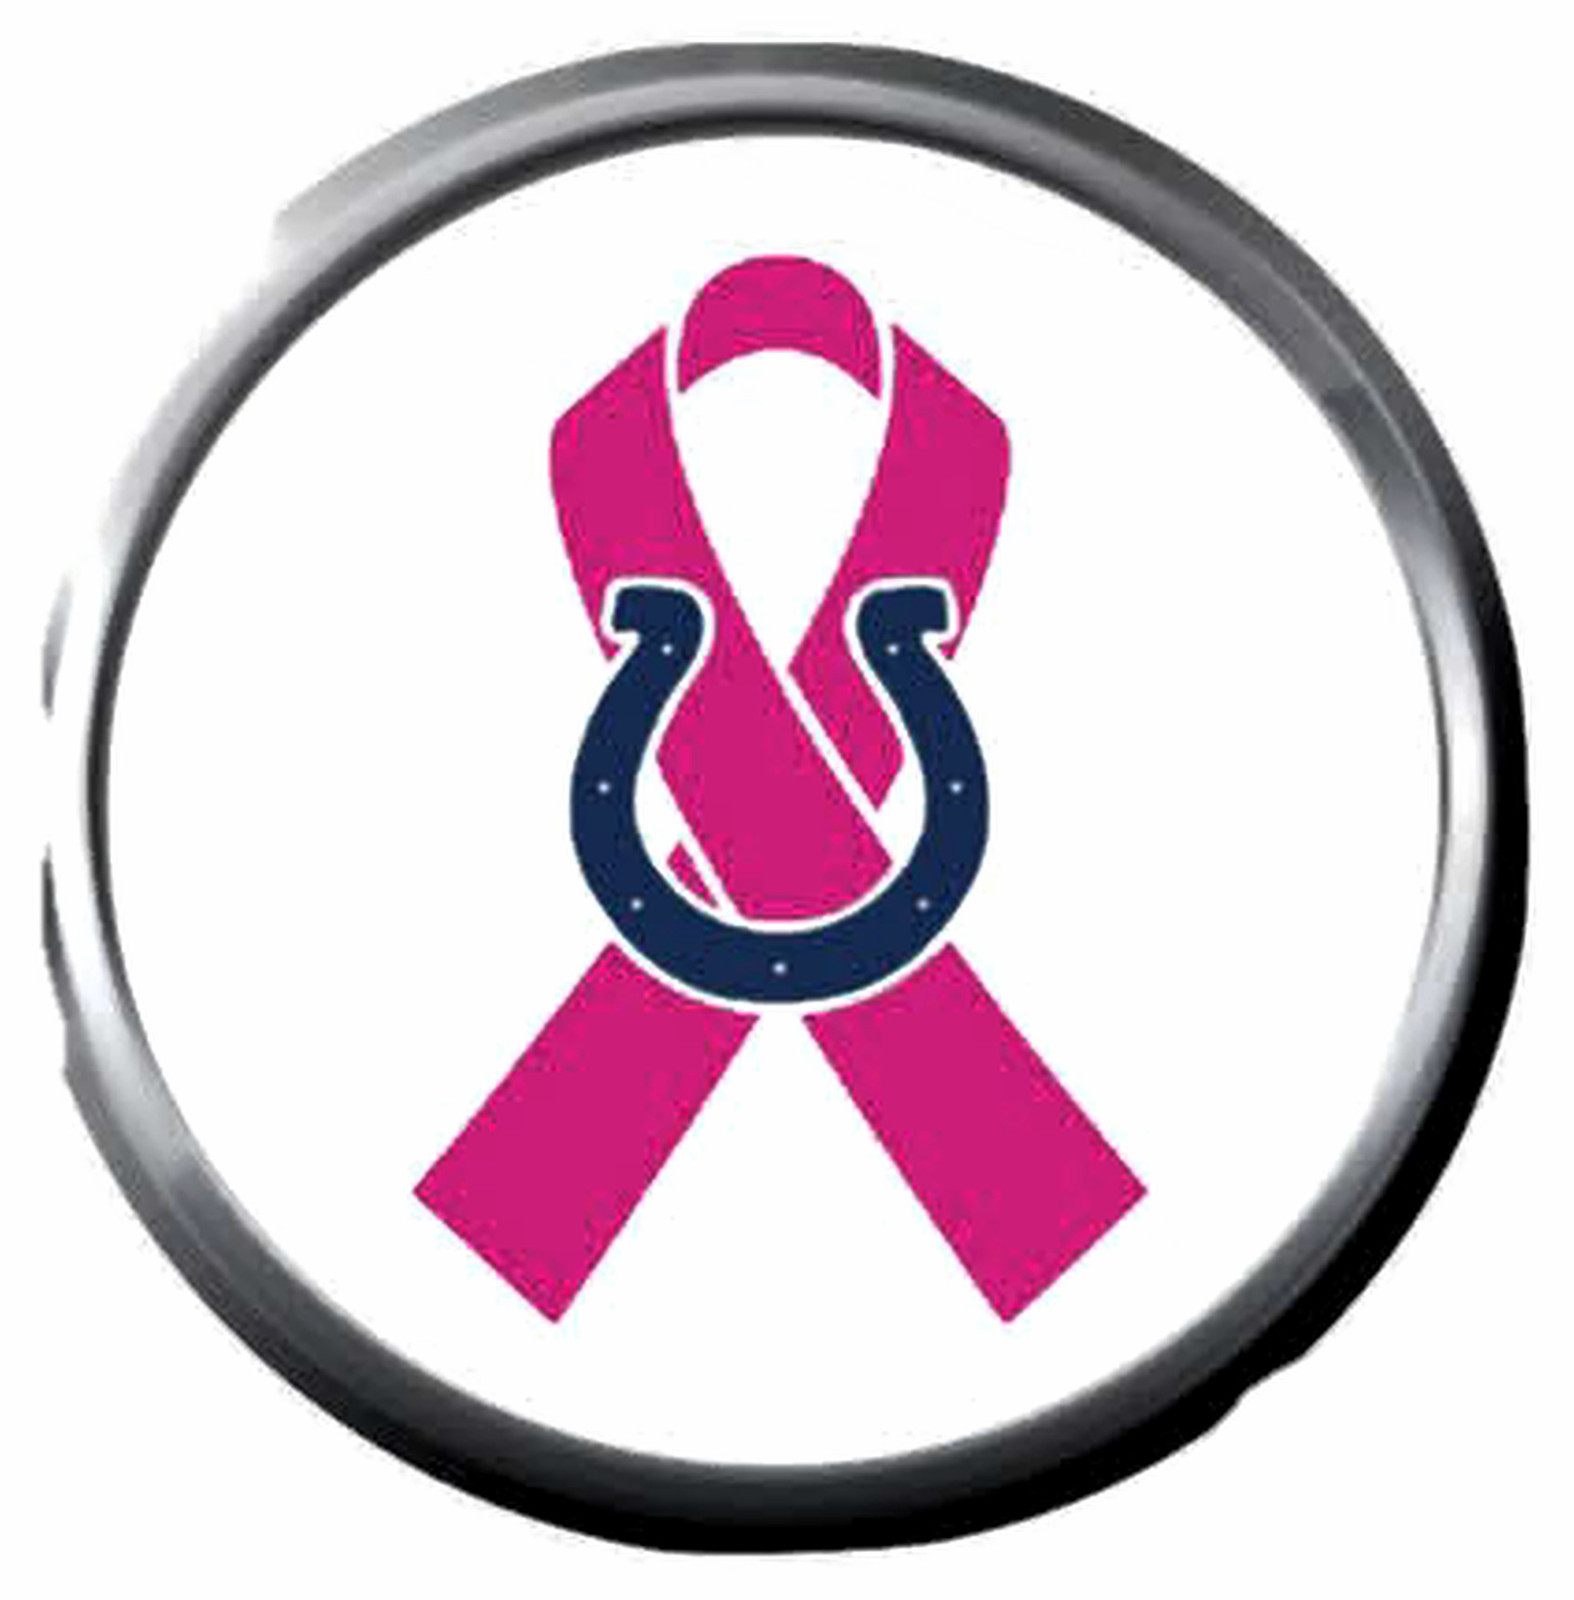 Primary image for Breast Cancer Ribbon Indy Colts NFL Football Logo 18MM - 20MM Snap Jewelry Charm